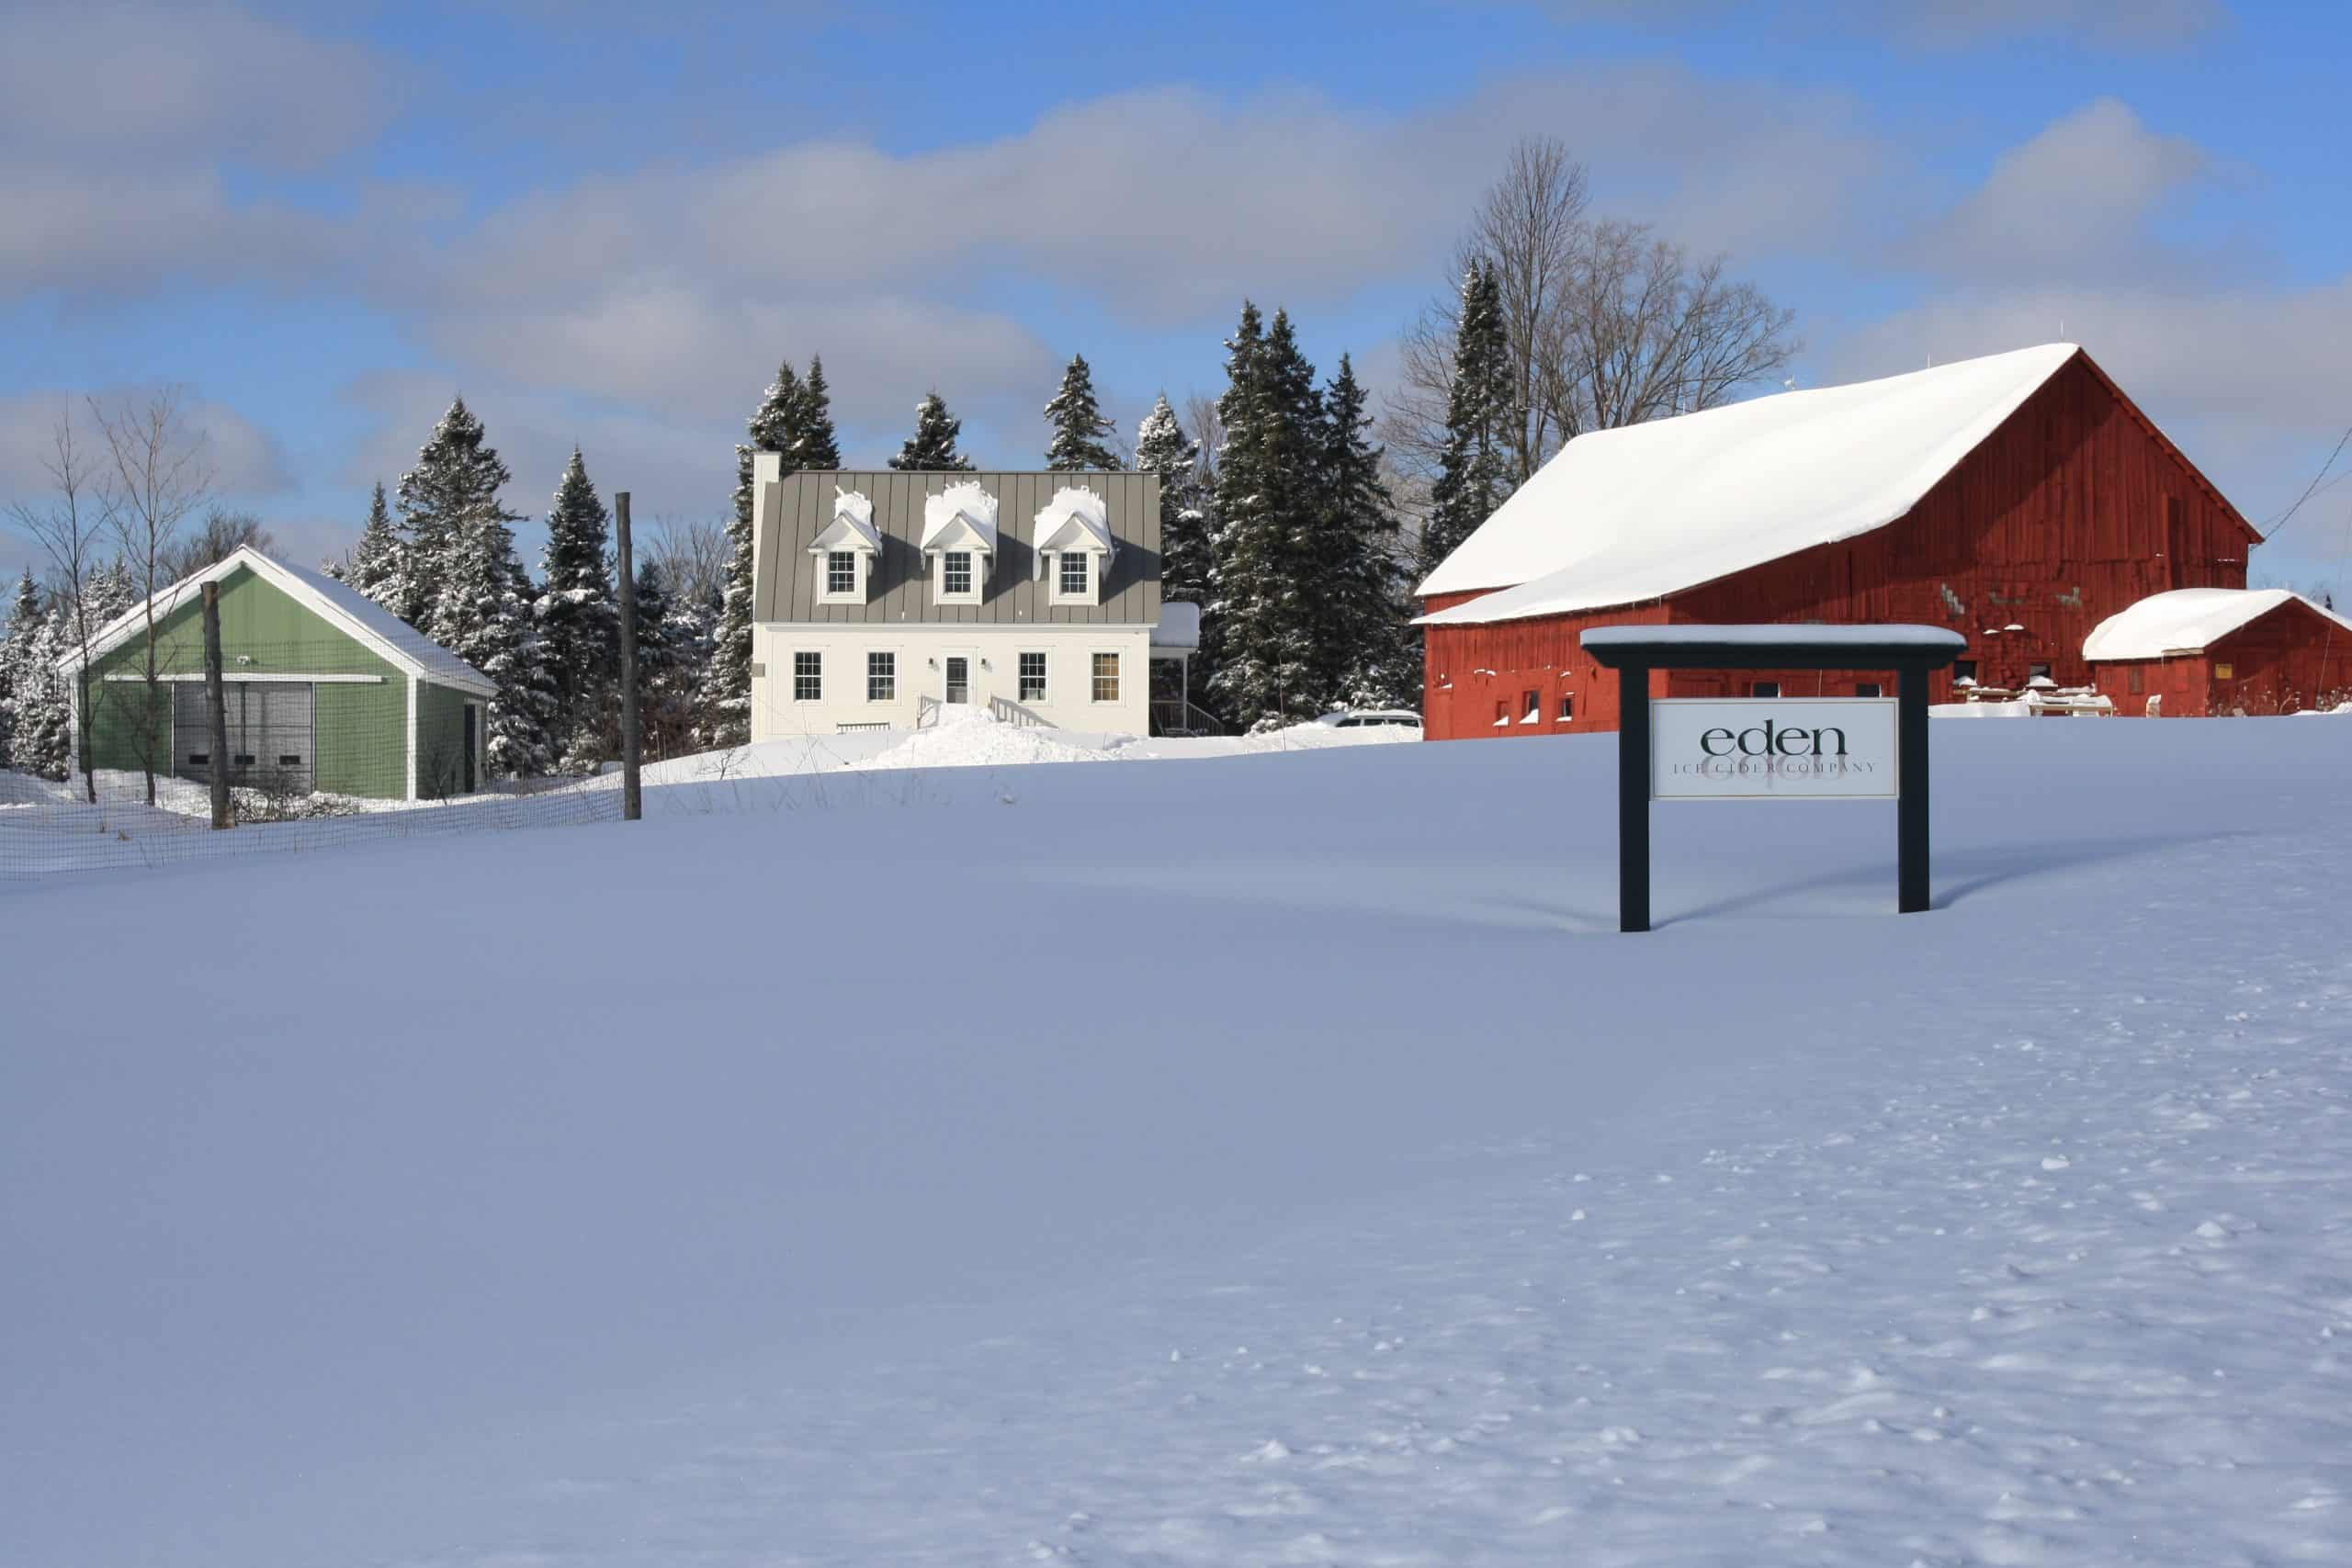 red cider barn and white house in snow